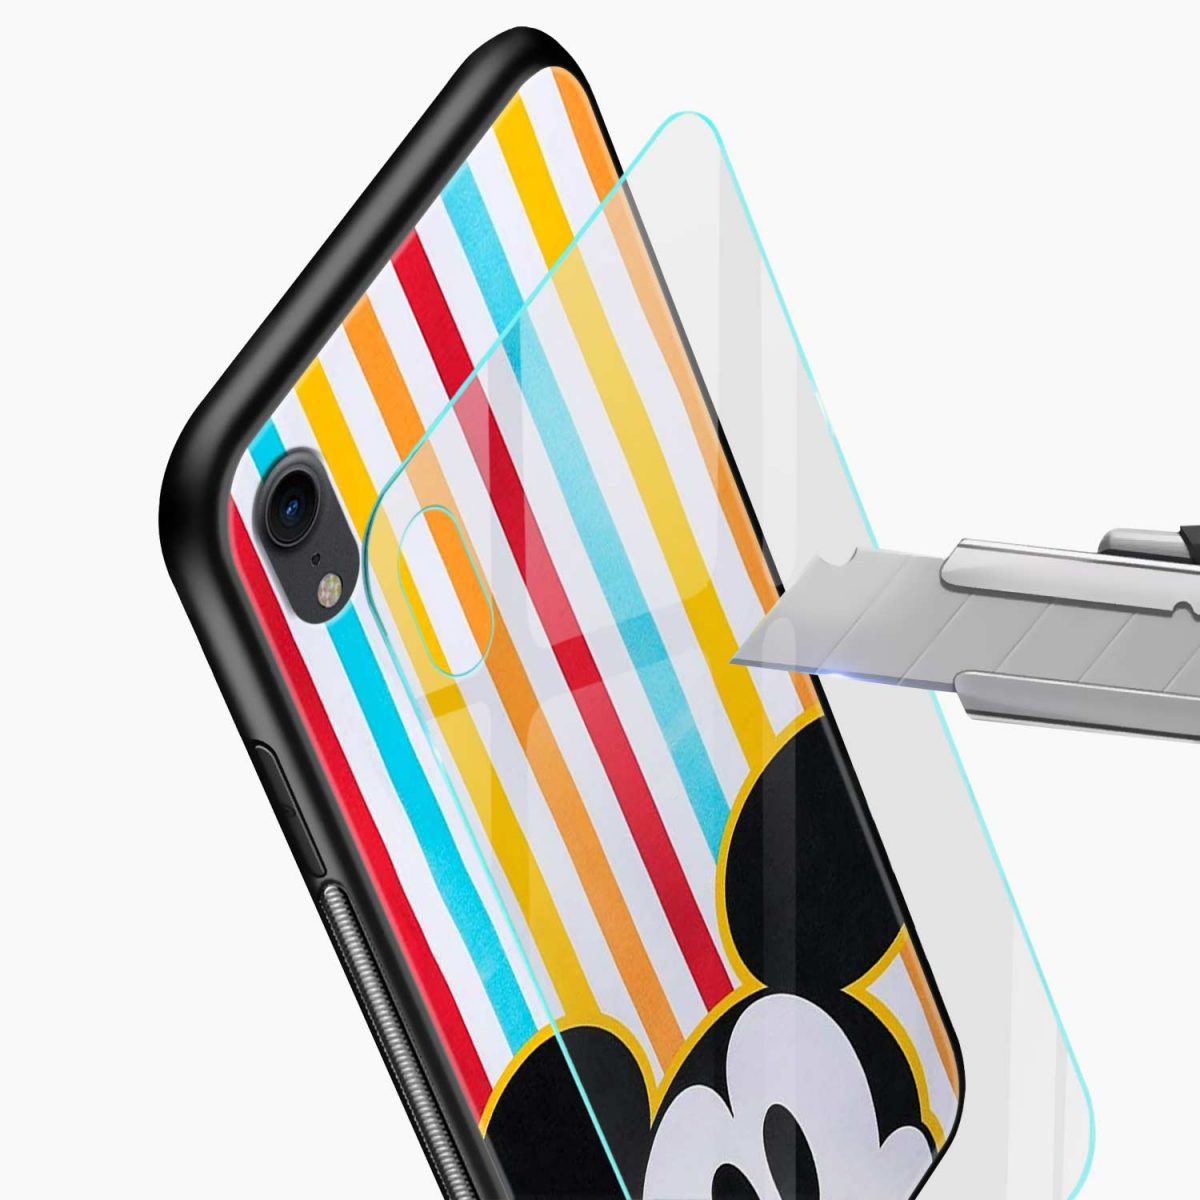 rigid spy mickey mouse apple iphone xr back cover glass view